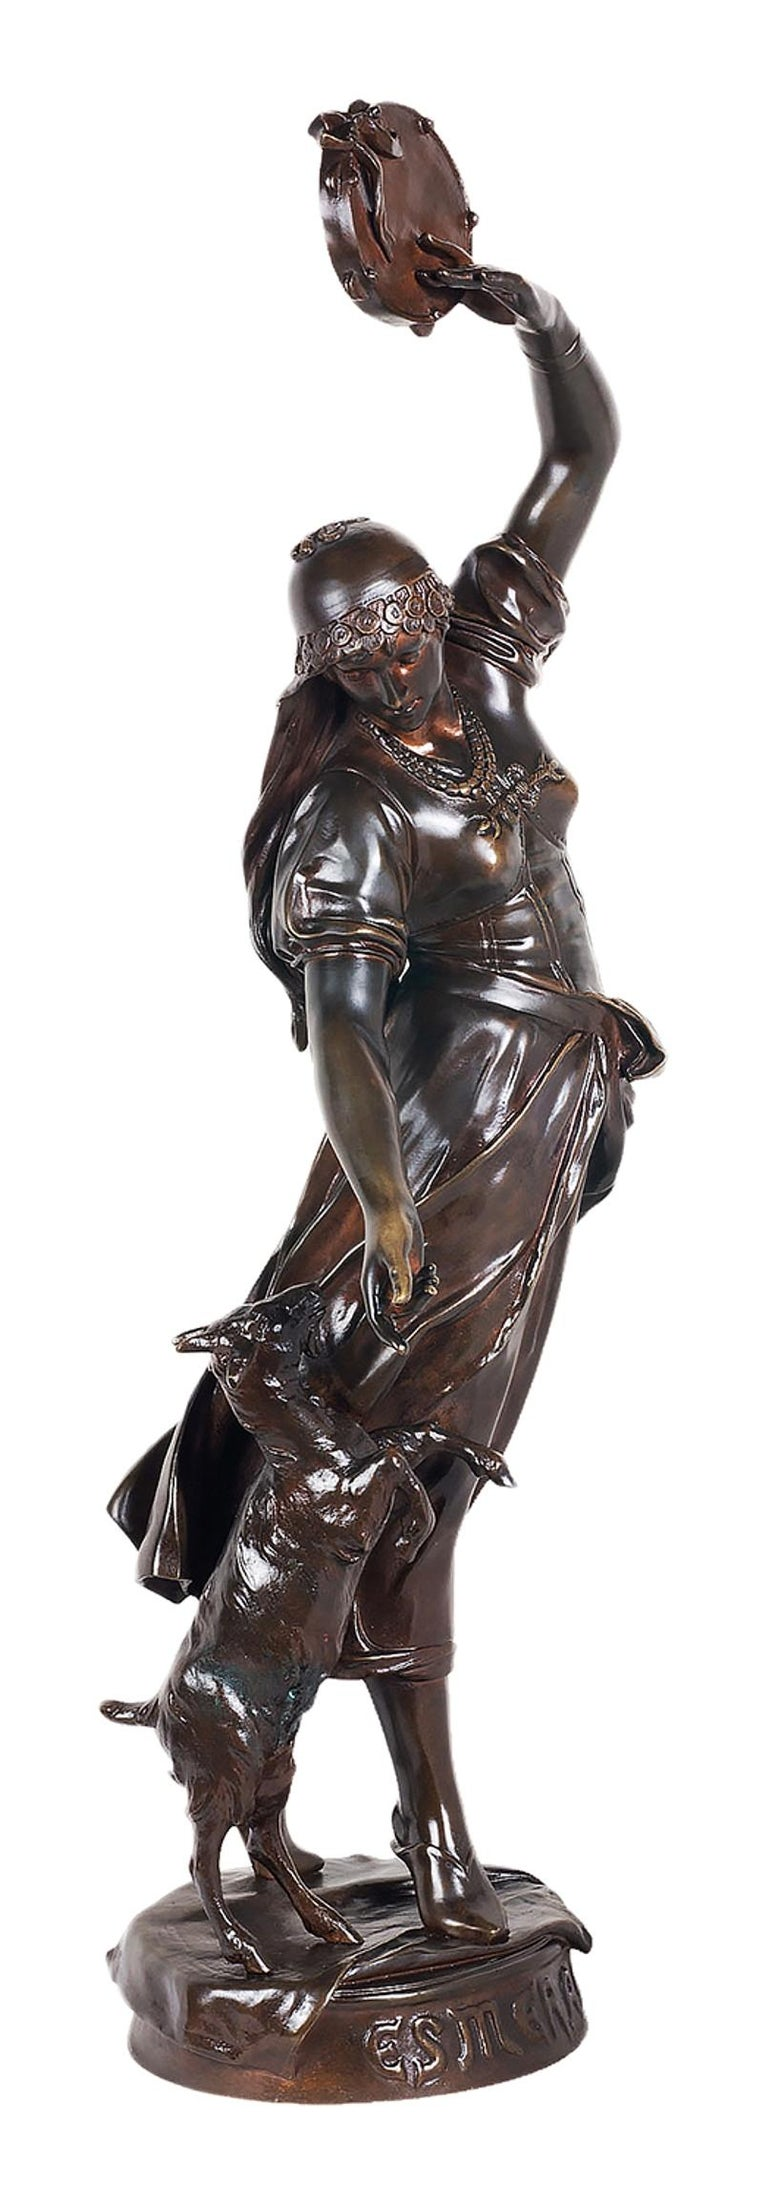 A fine quality 19th century patinated bronze statue of Esmeralda.  Esmeralda, born Agnès, is a fictional character in Victor Hugo's 1831 novel The Hunchback of Notre-Dame. She is a French Roma girl. She constantly attracts men with her seductive